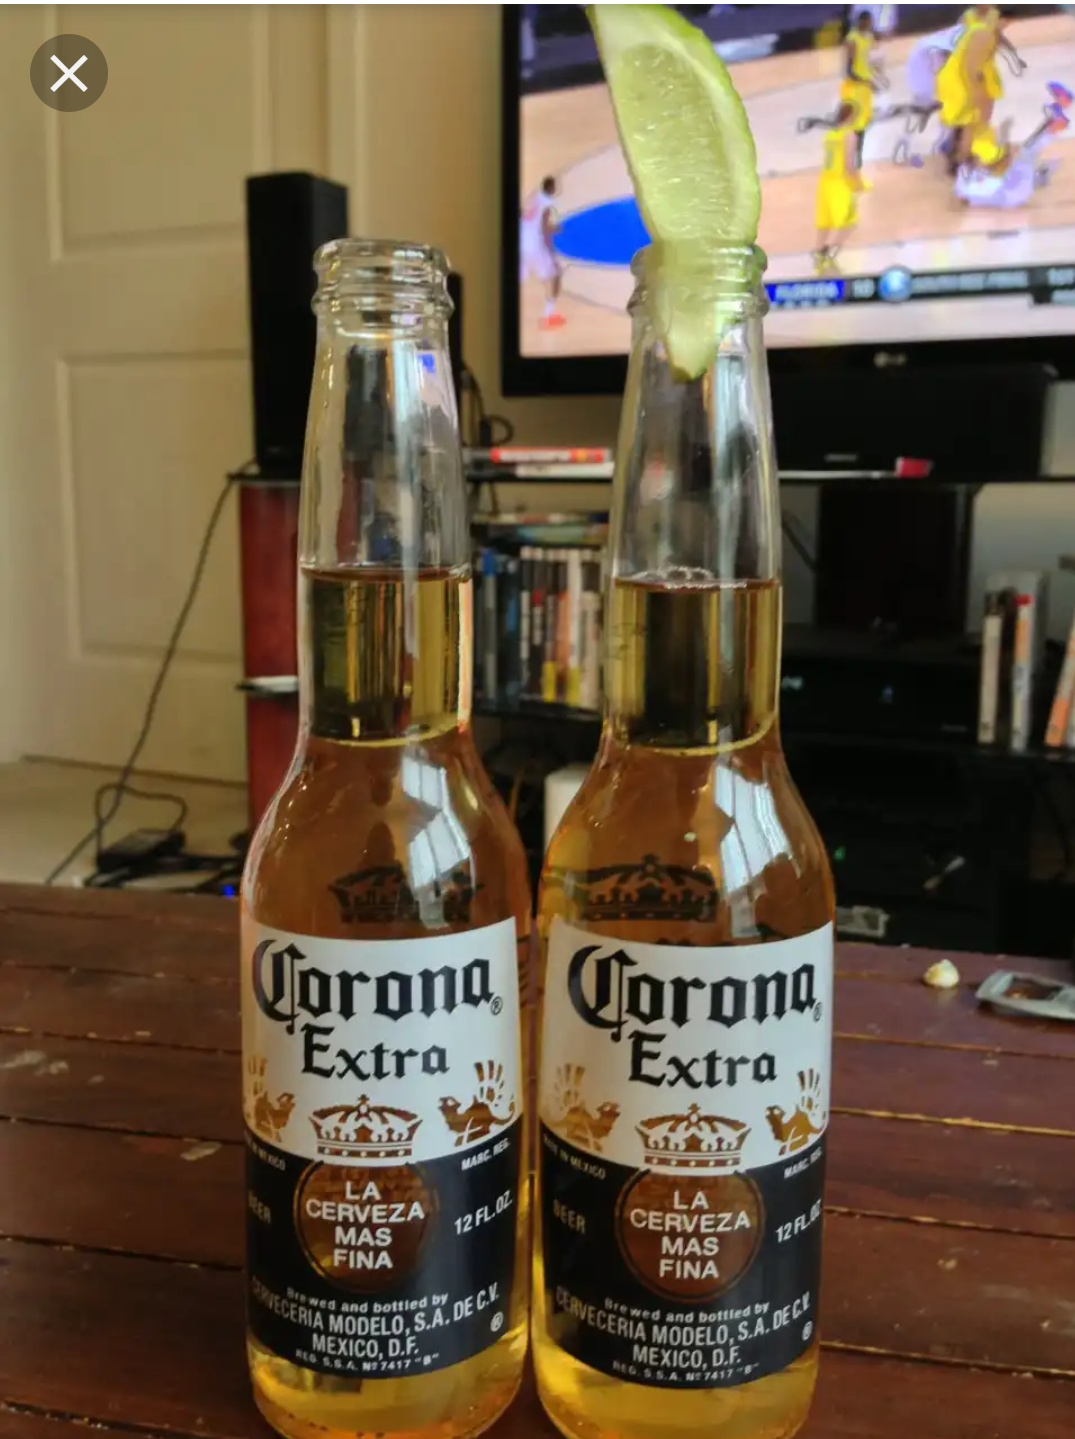 A six pack of Corona beer on a table